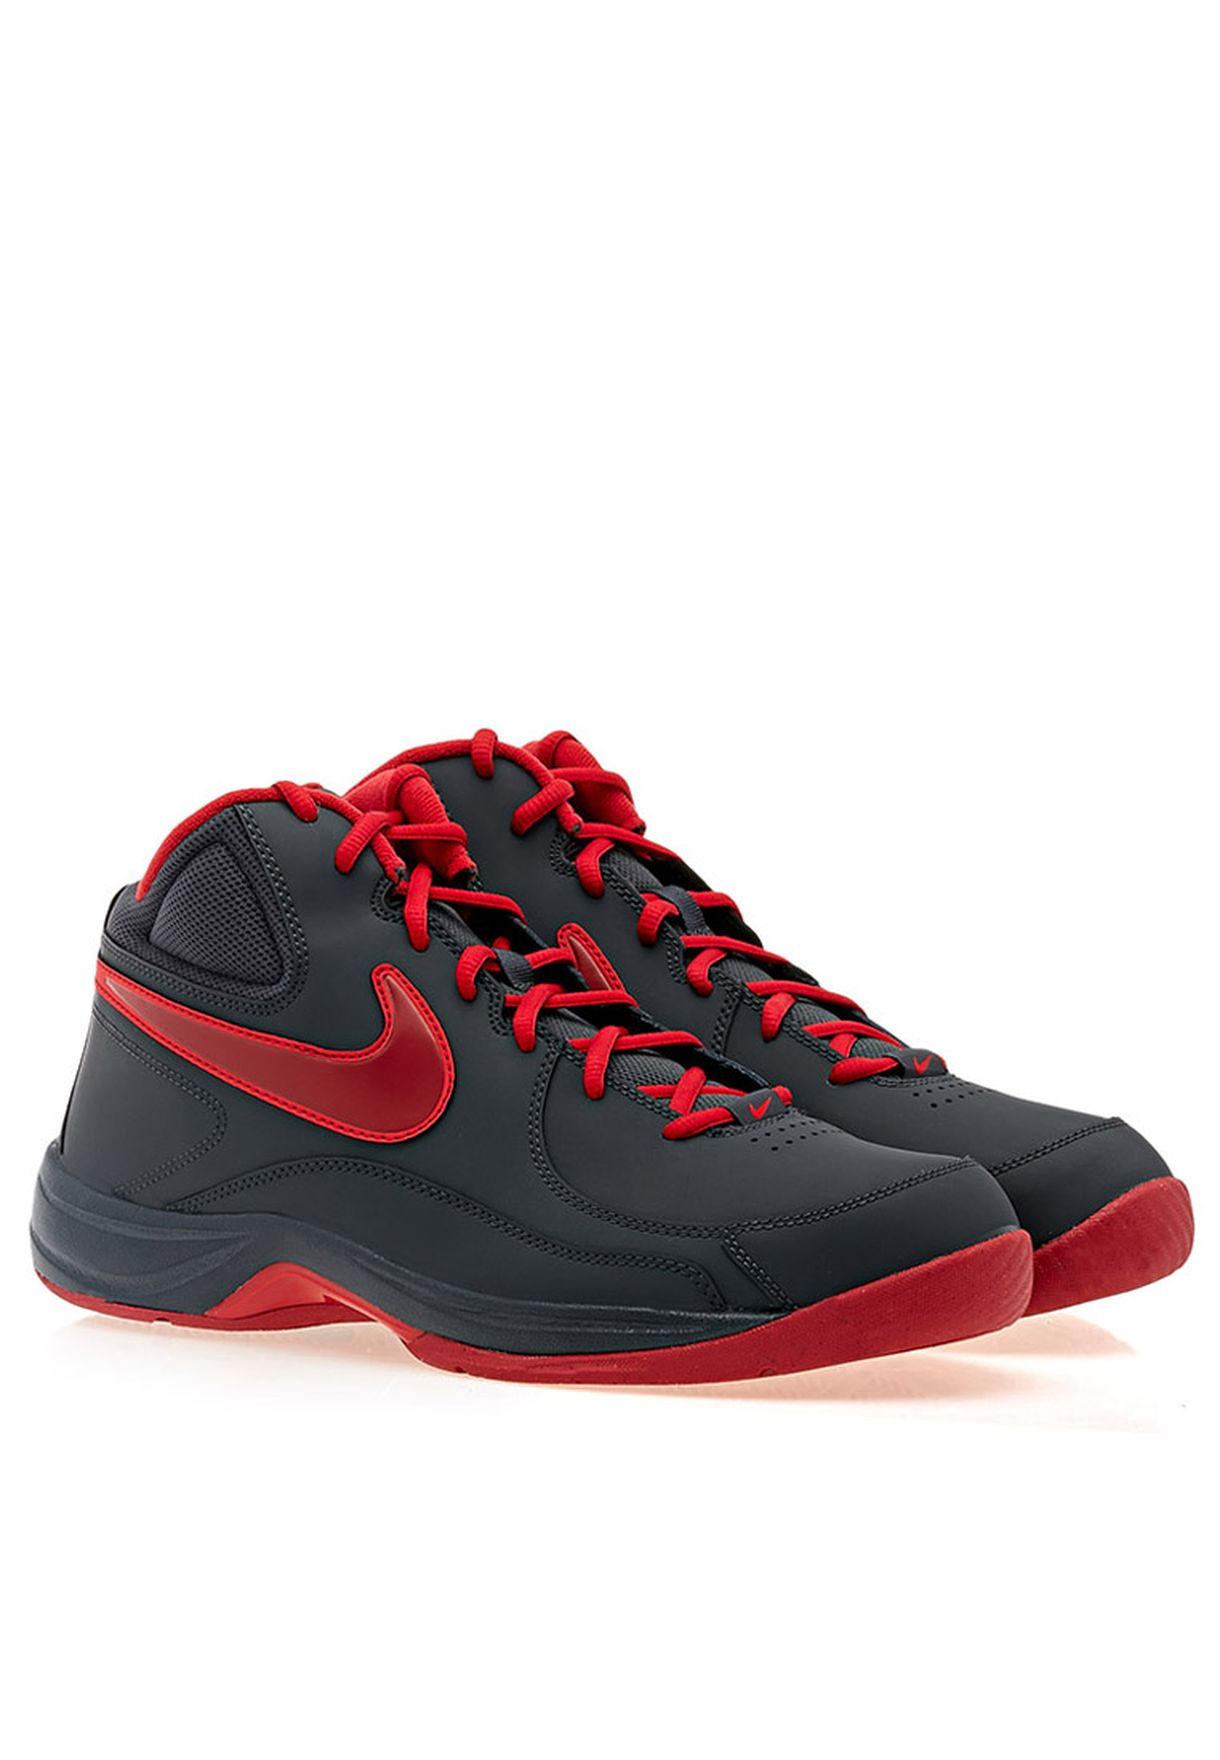 dbf58621c8b Shop Nike The Overplay Vii Basketball Shoes 511372-017 for Men in ...